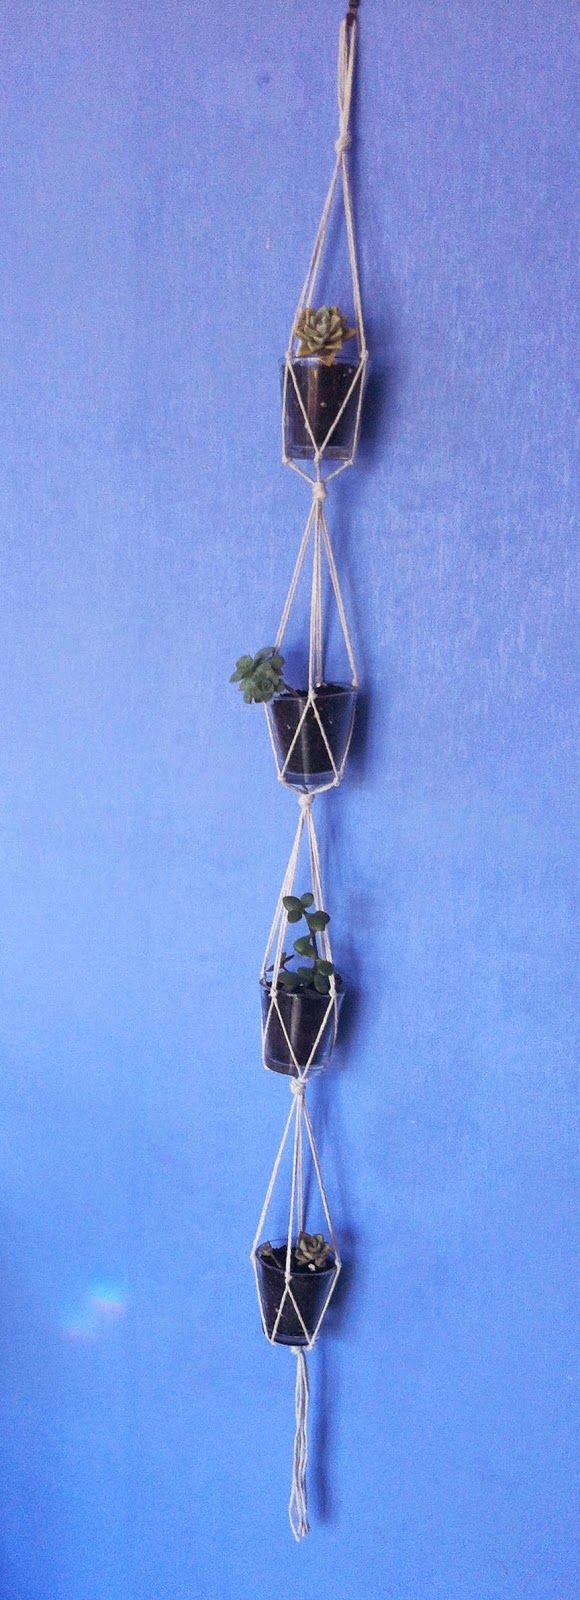 Shannon's Crafts and other stuff: Macrame hanging planters